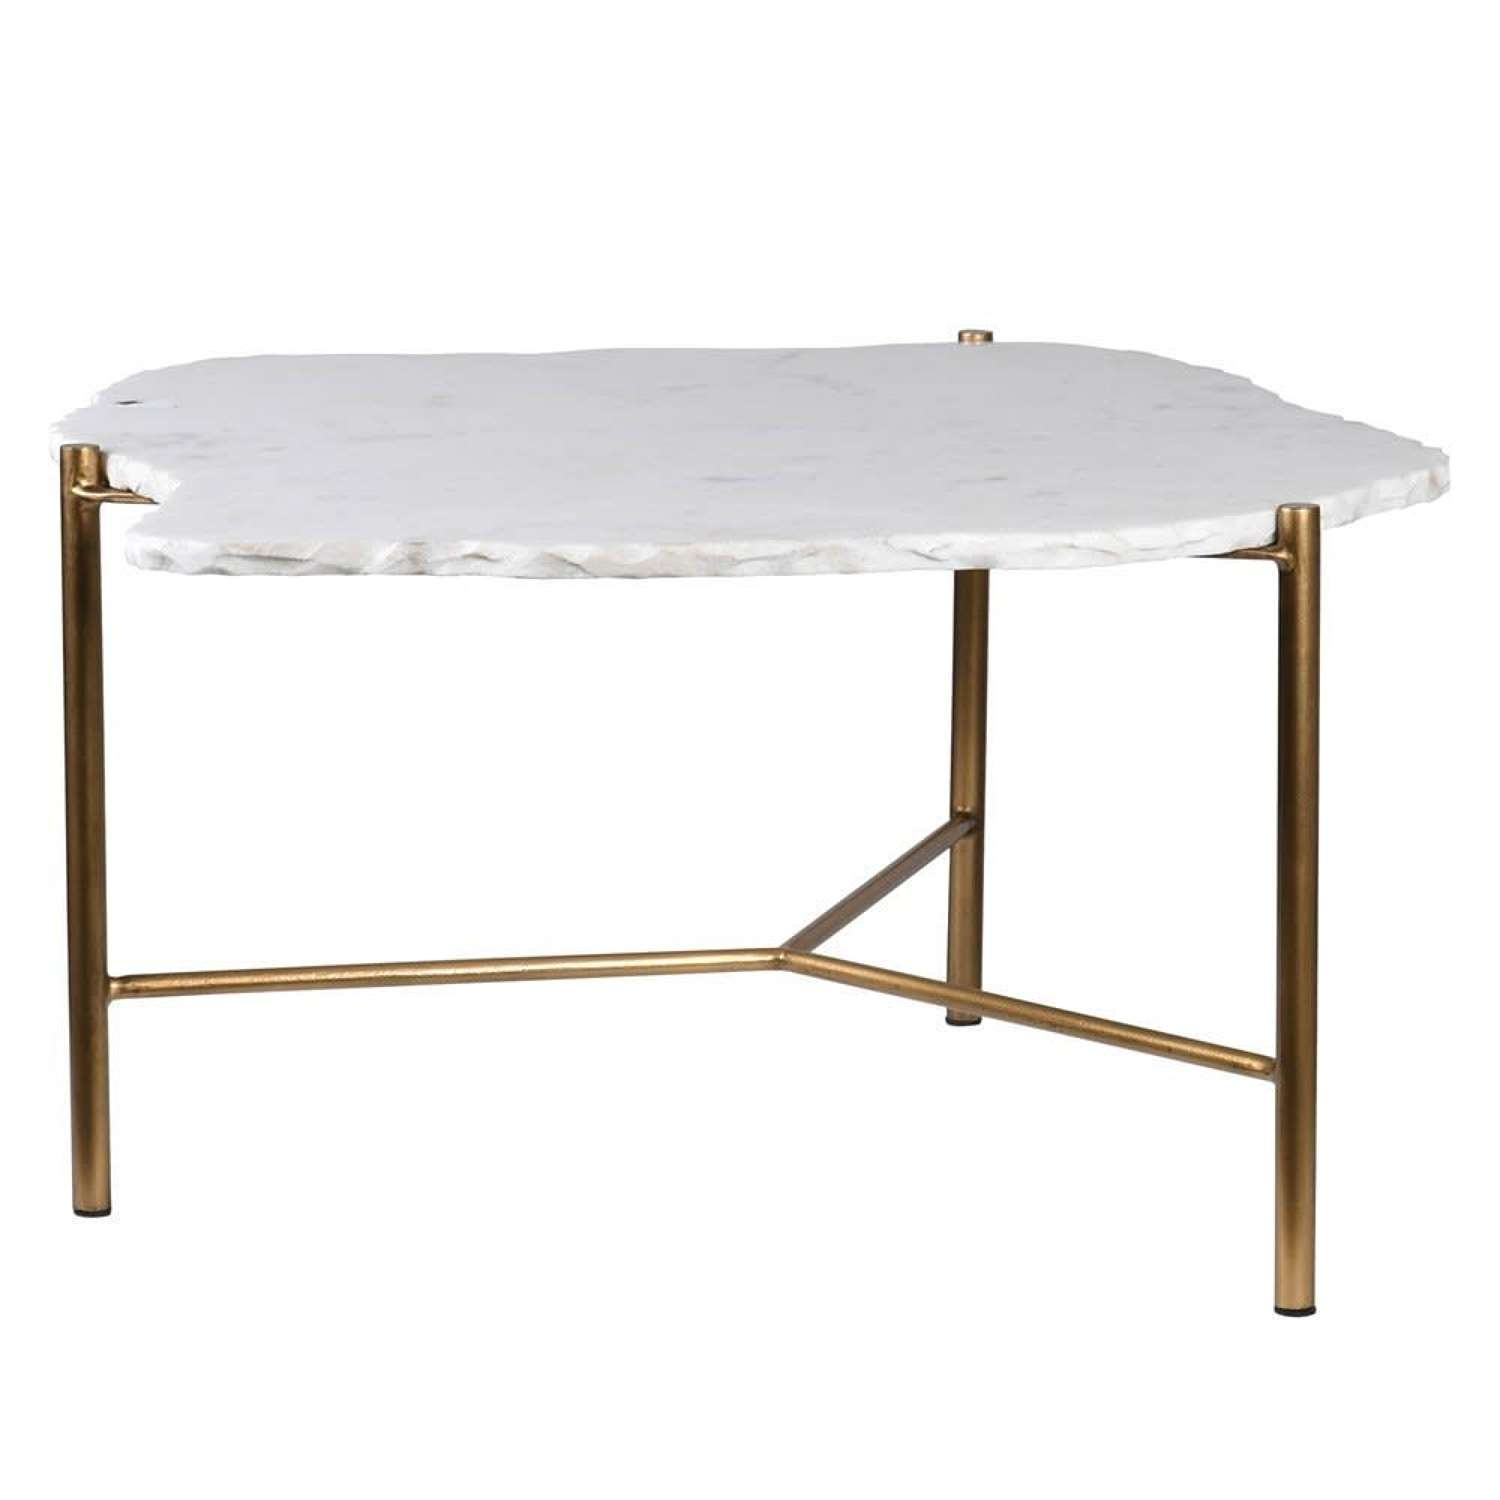 Gold Finished Coffee Table with White Stone Top